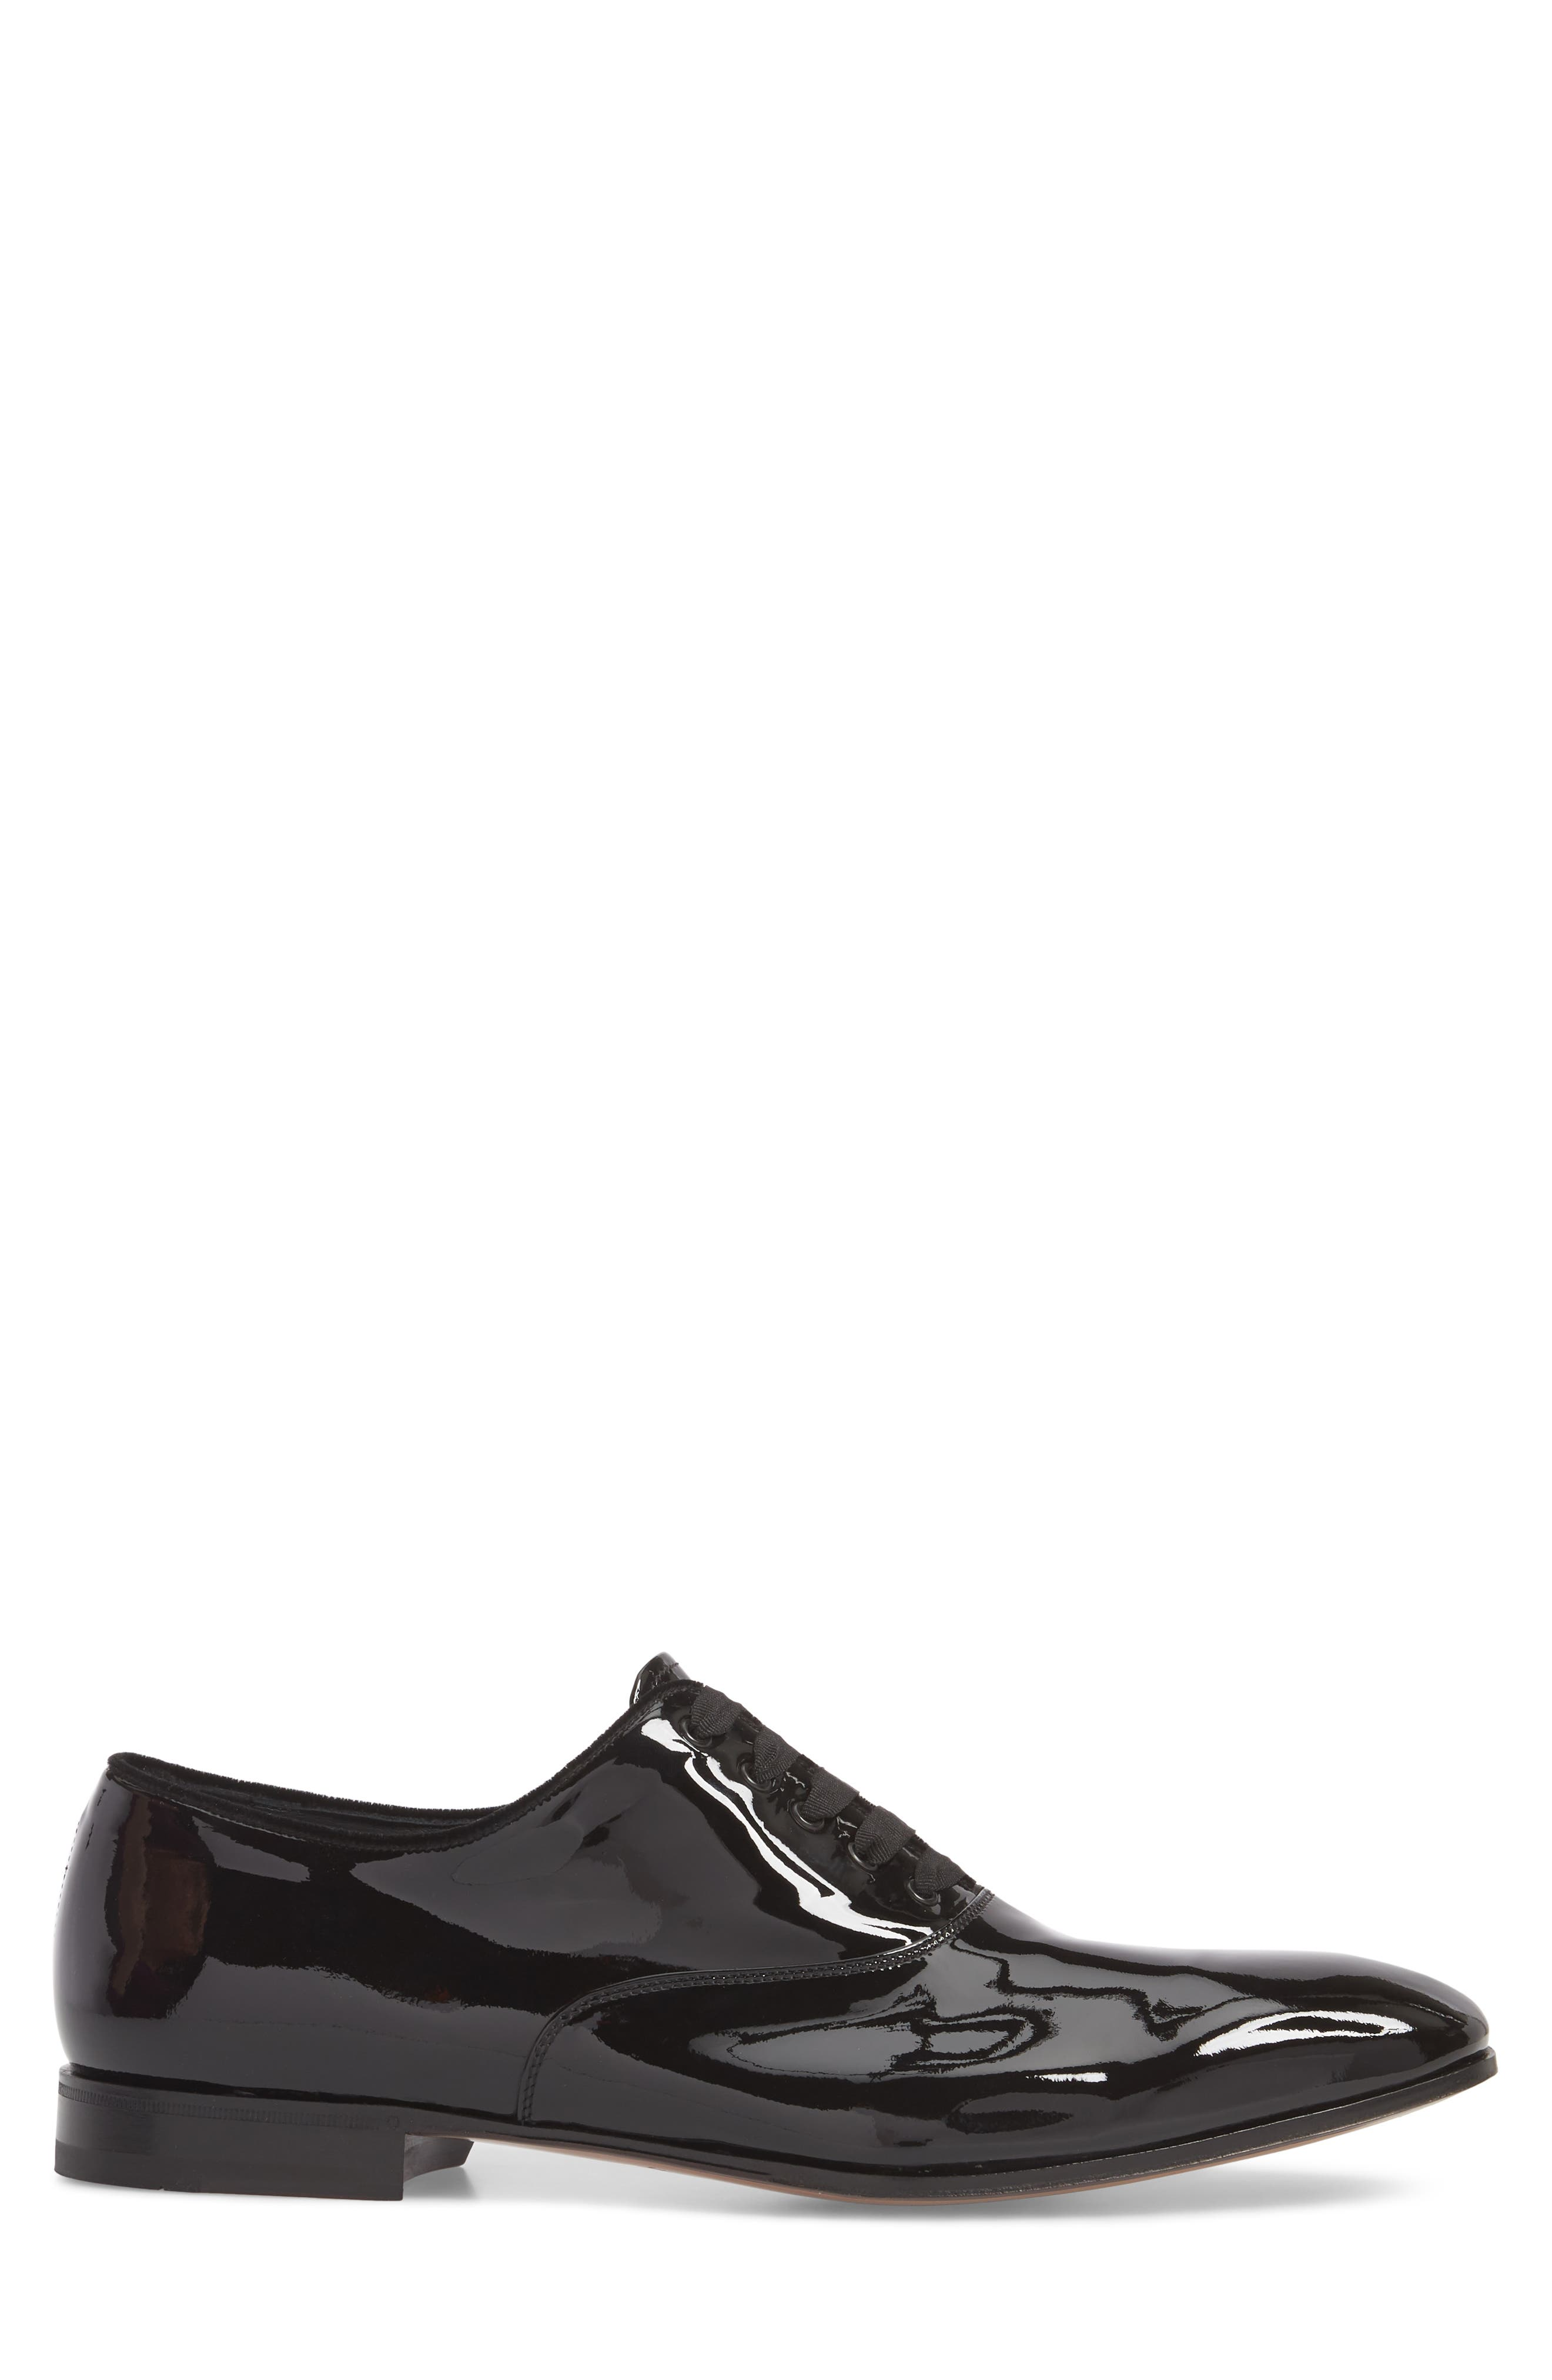 Belshaw Patent Oxford,                             Alternate thumbnail 3, color,                             NERO PATENT LEATHER